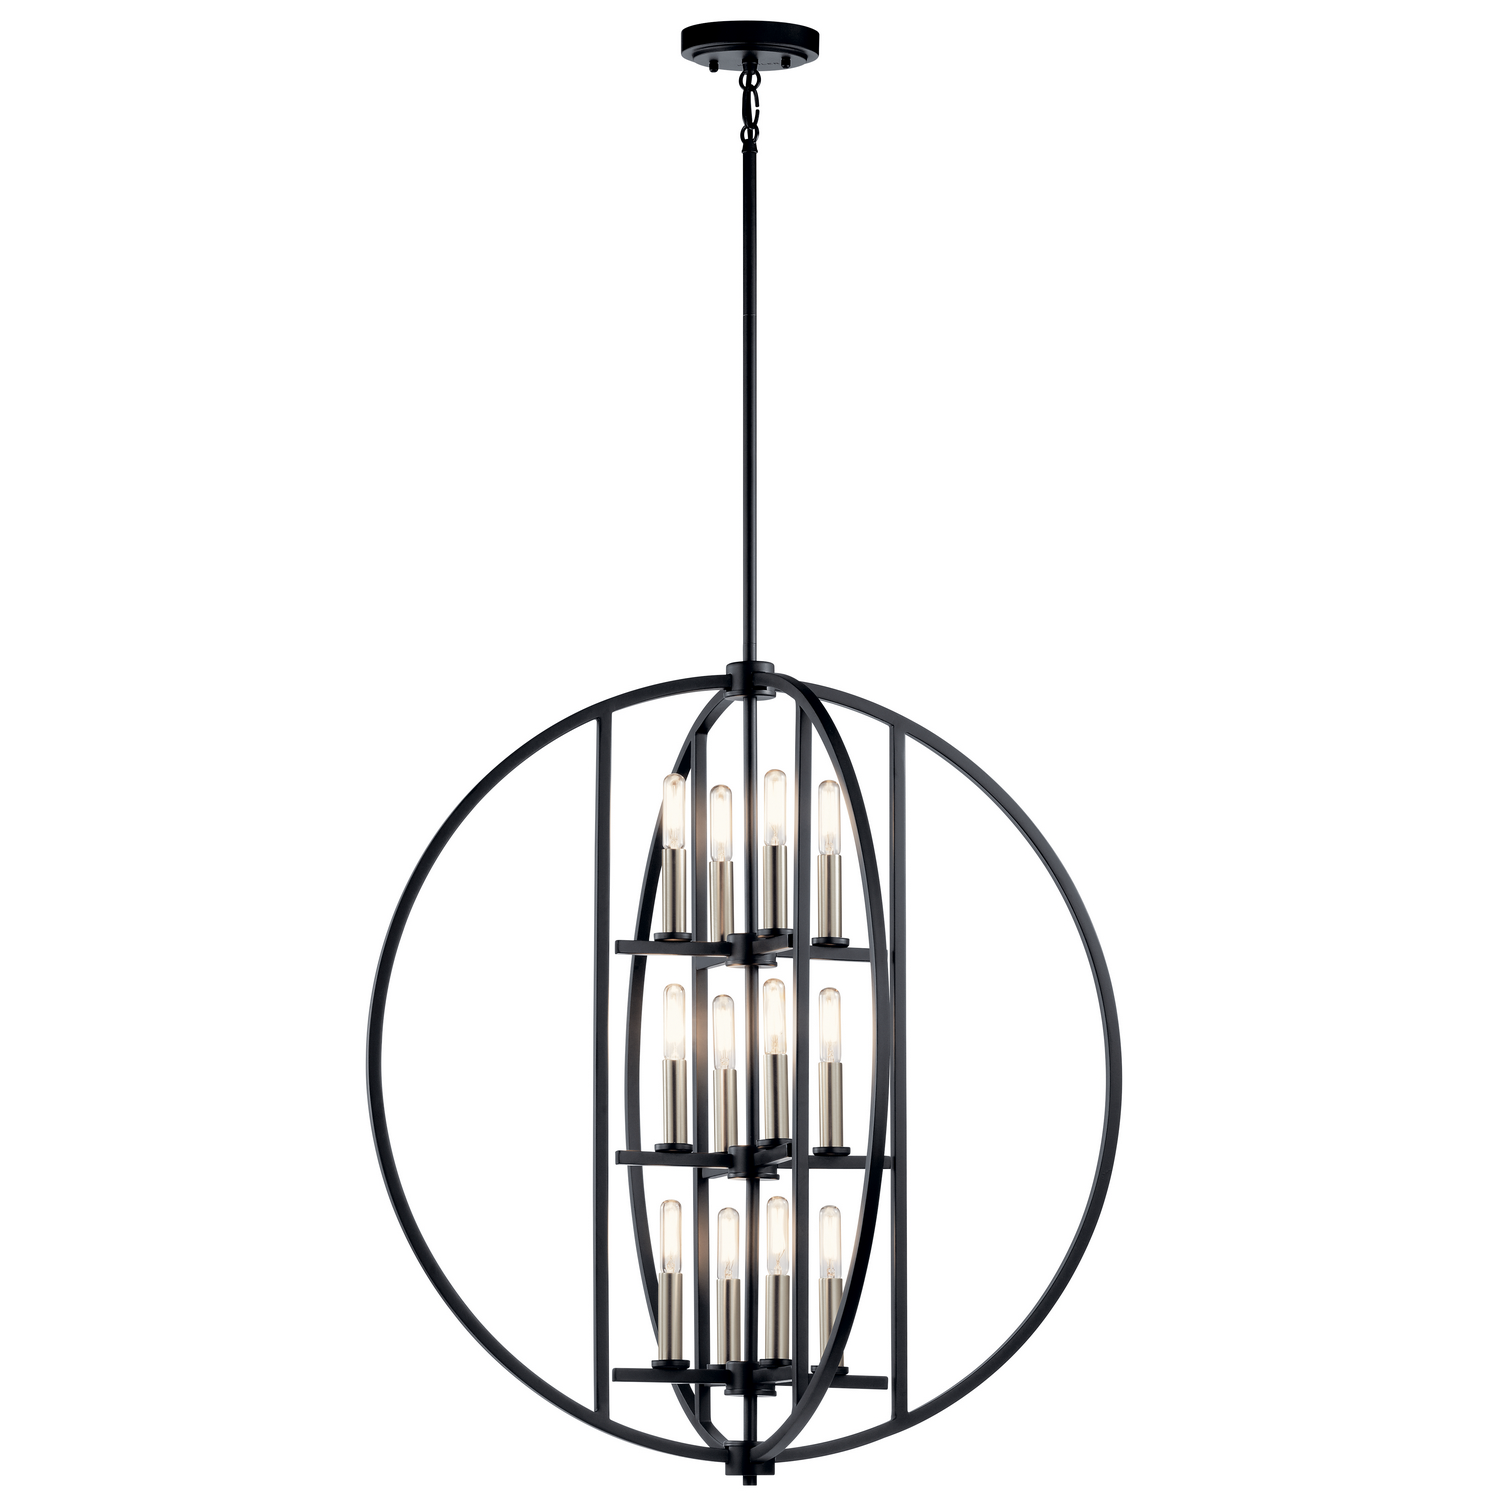 12 Light Chandelier from the Samural collection by Kichler 43644BK